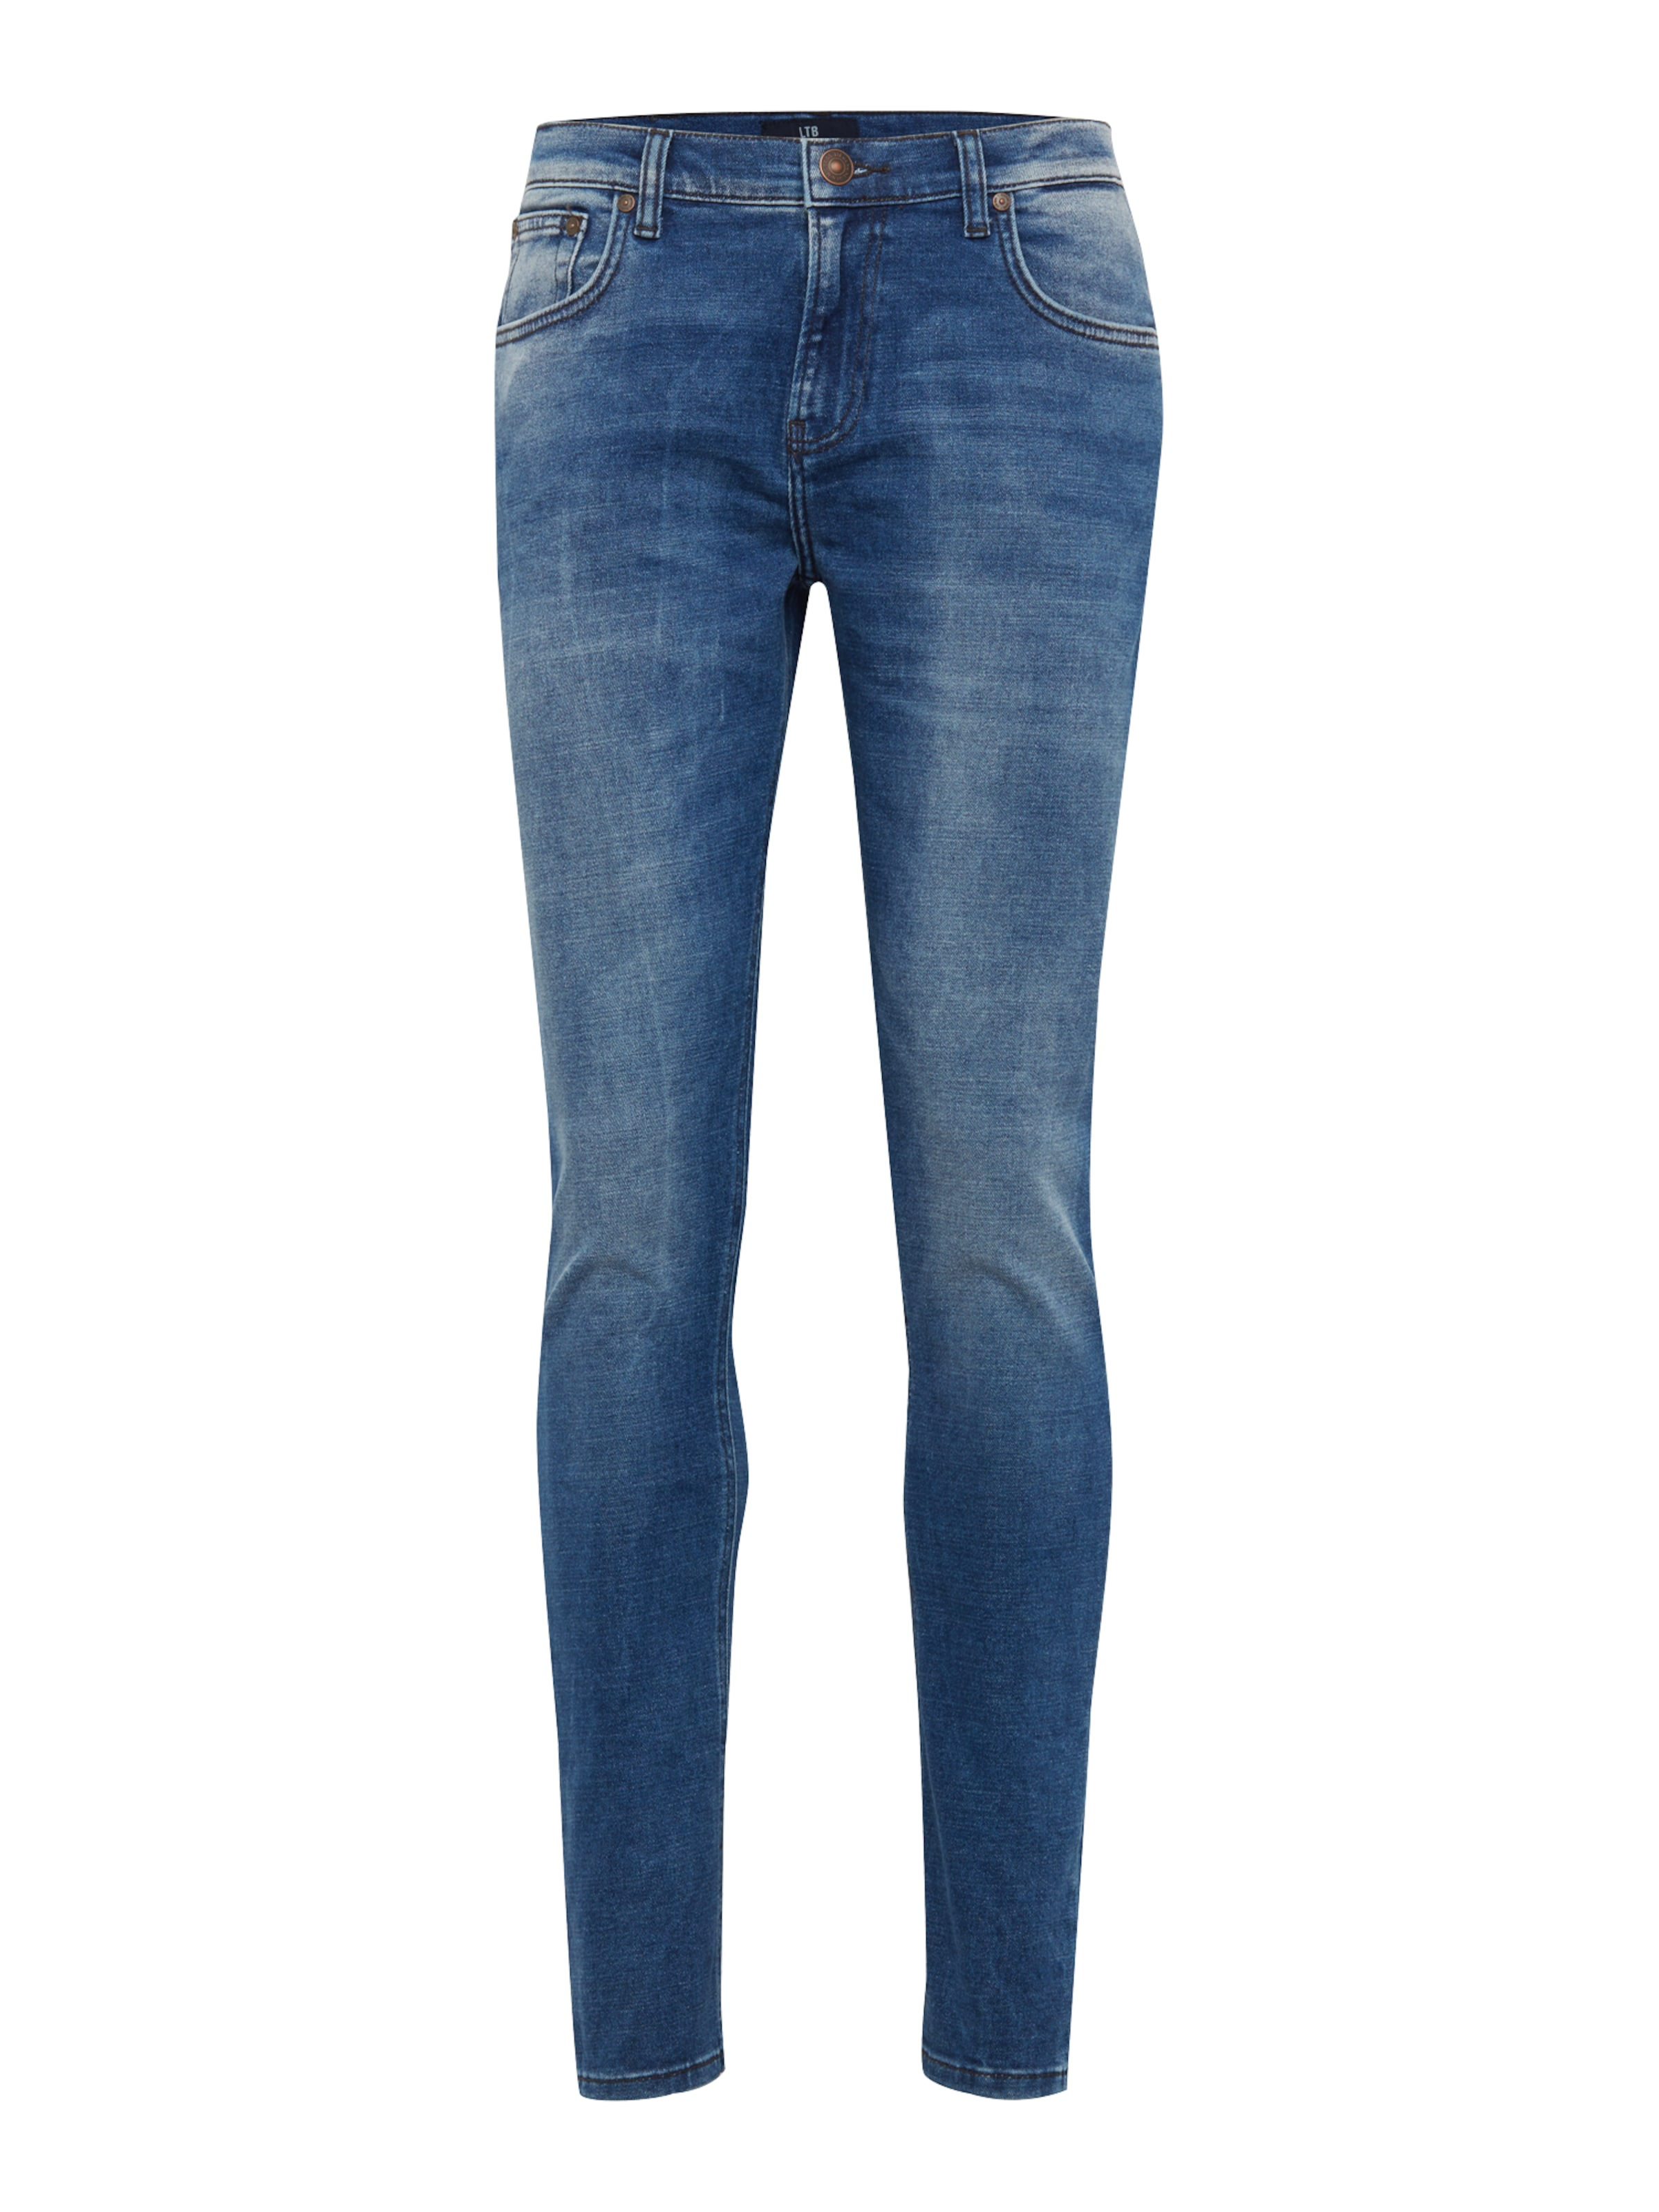 'smarty' Blue In Ltb Jeans Denim 5jR34AL